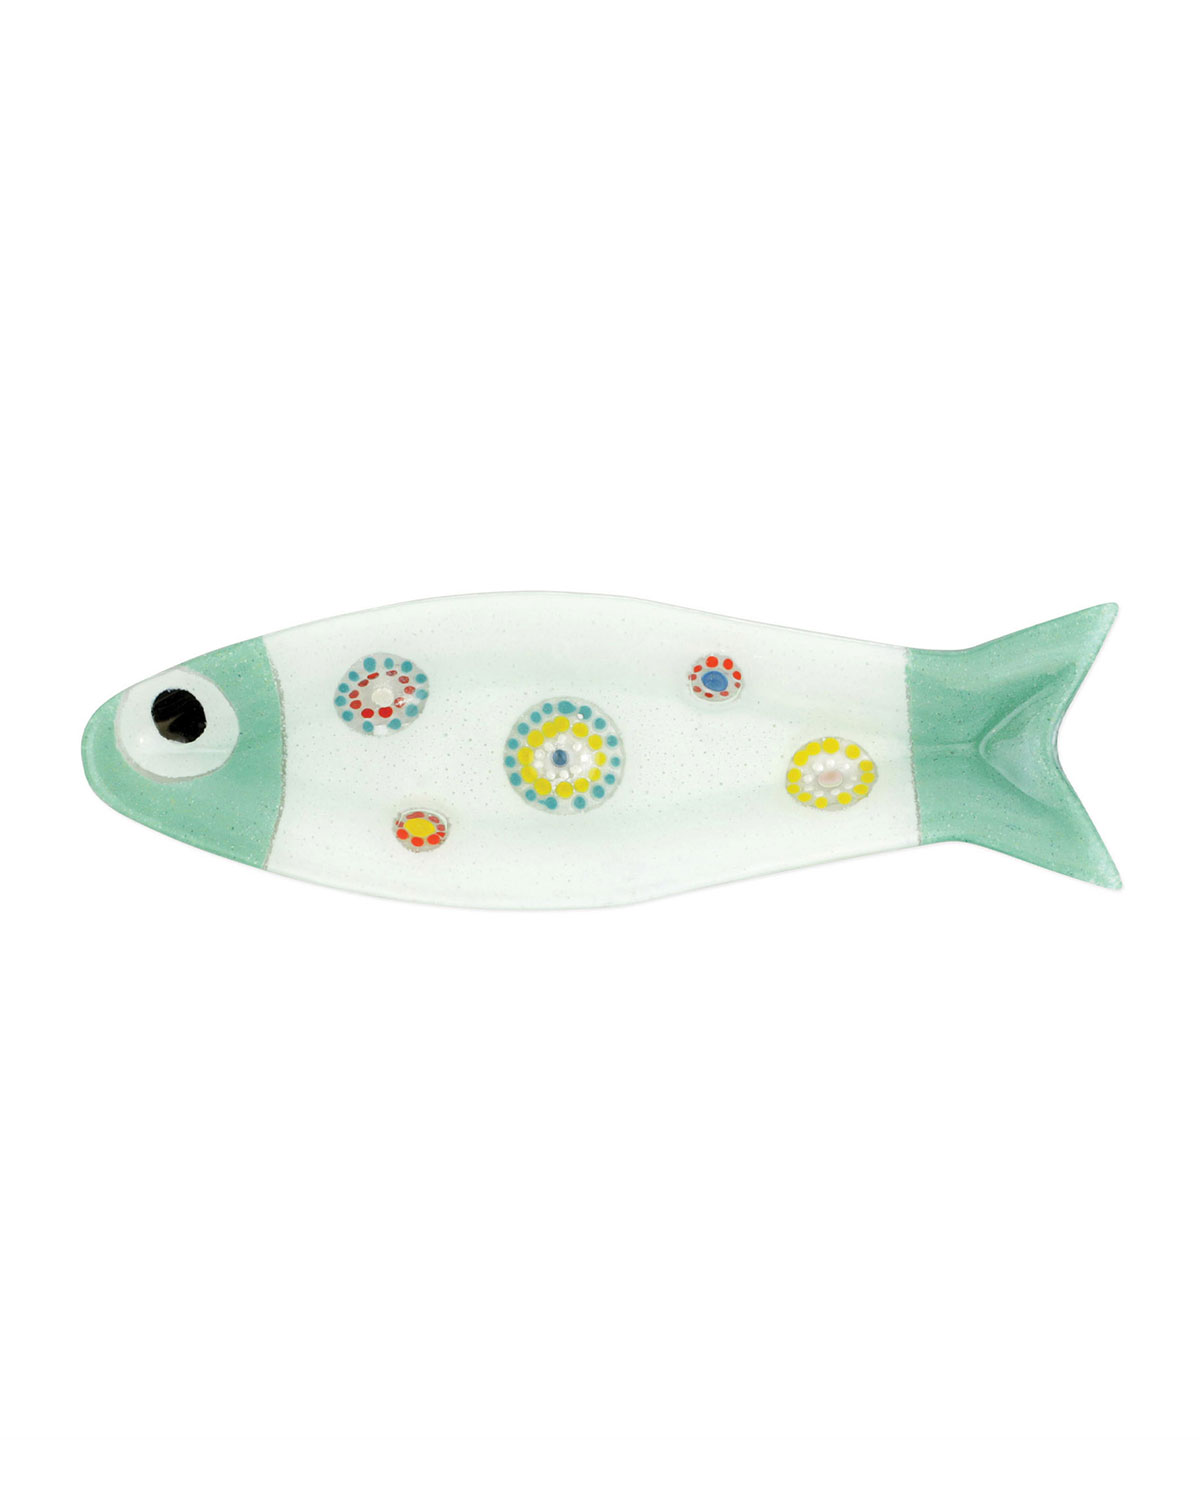 Vietri Pesci Colorati Medium Aqua Fish Tray